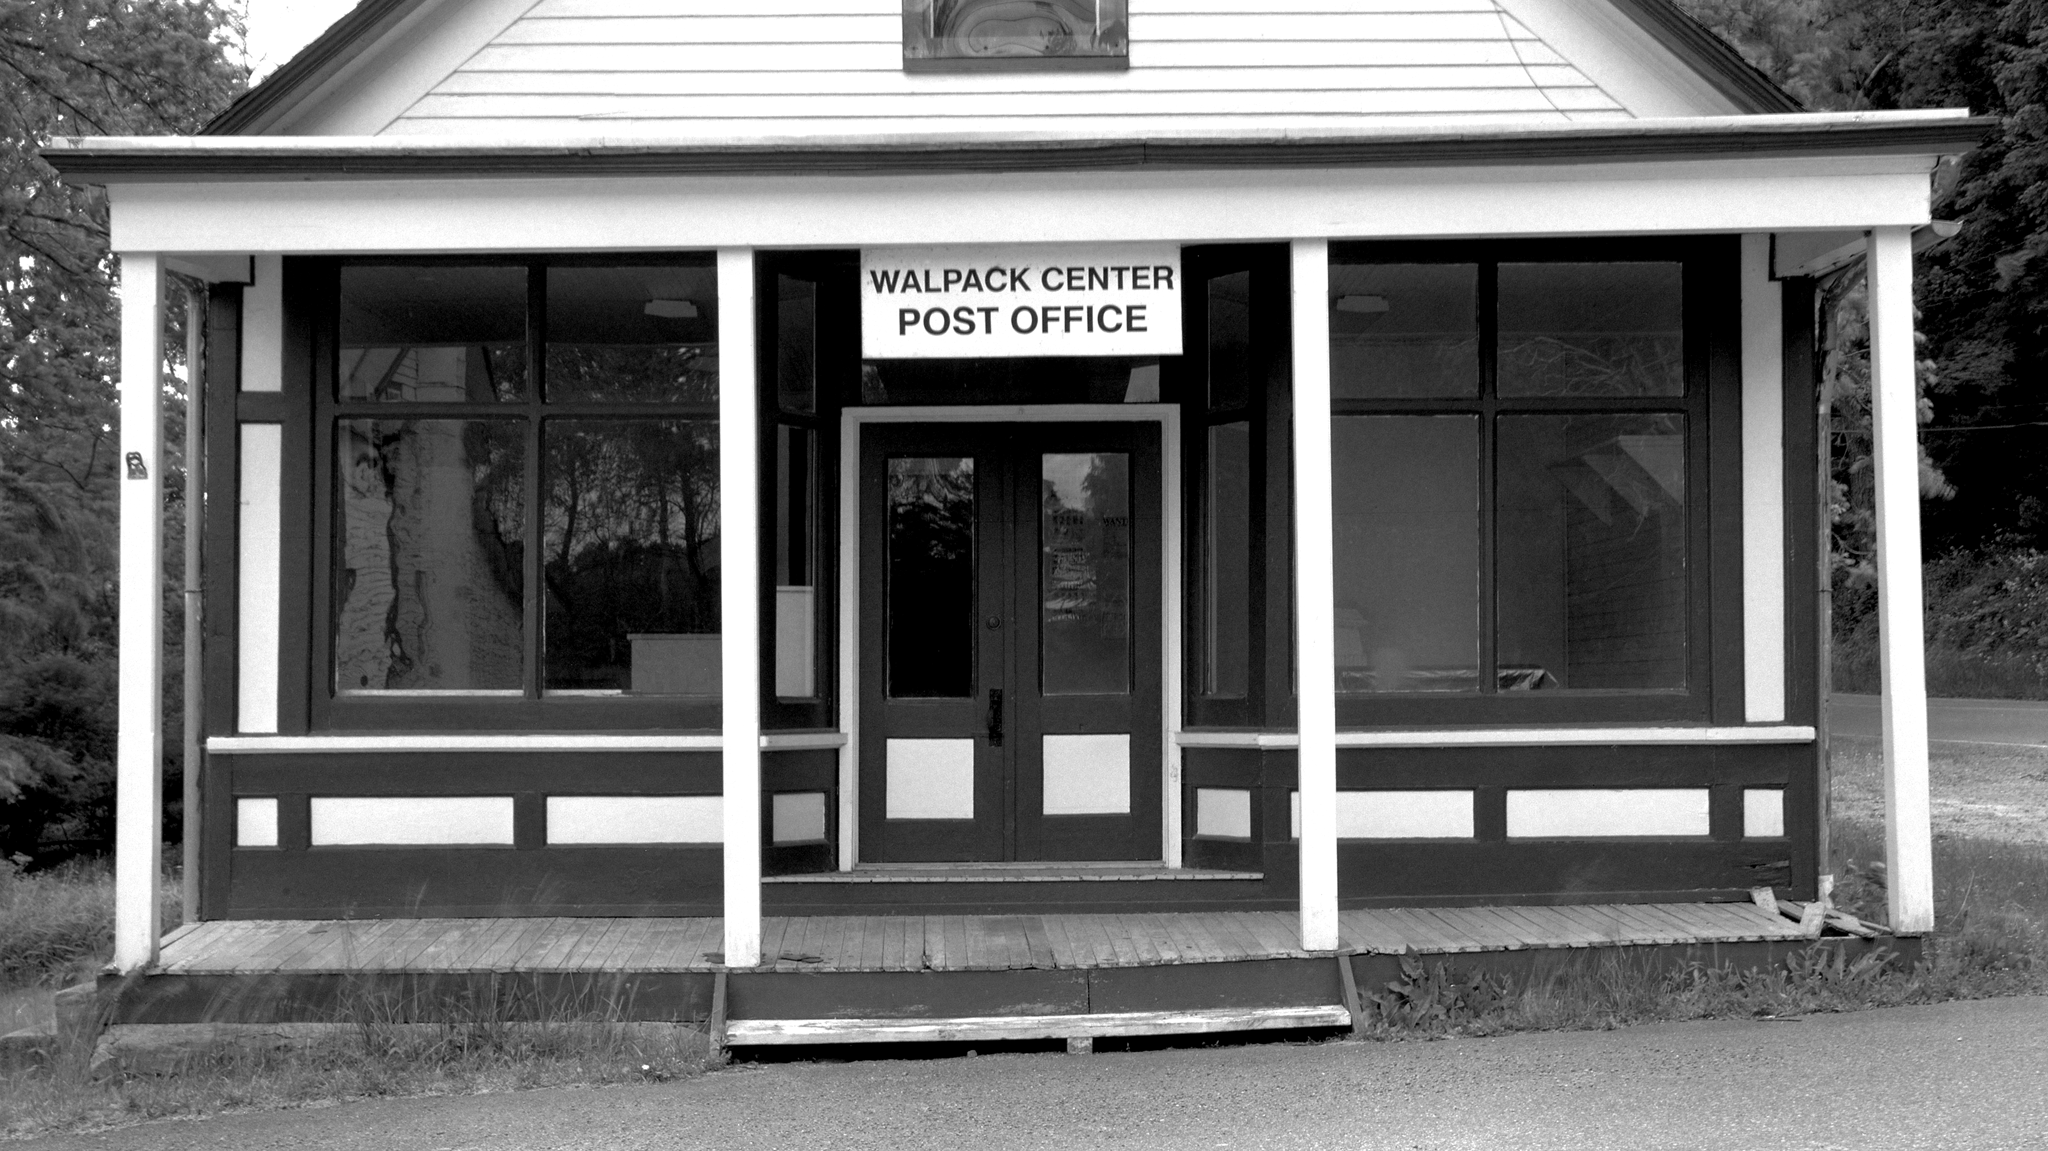 4x5_for_365_project_0178_Wallpack_Center_Post_Office.png